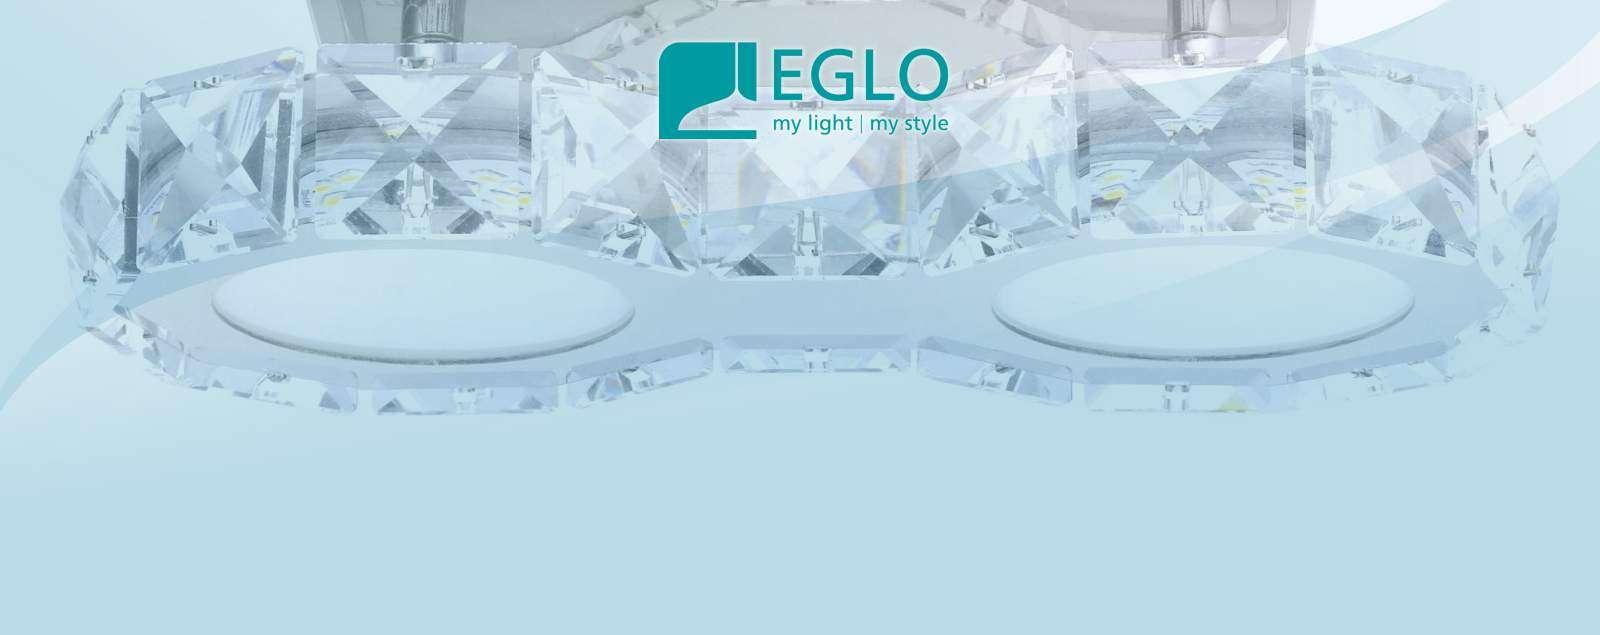 Eglo Lighting